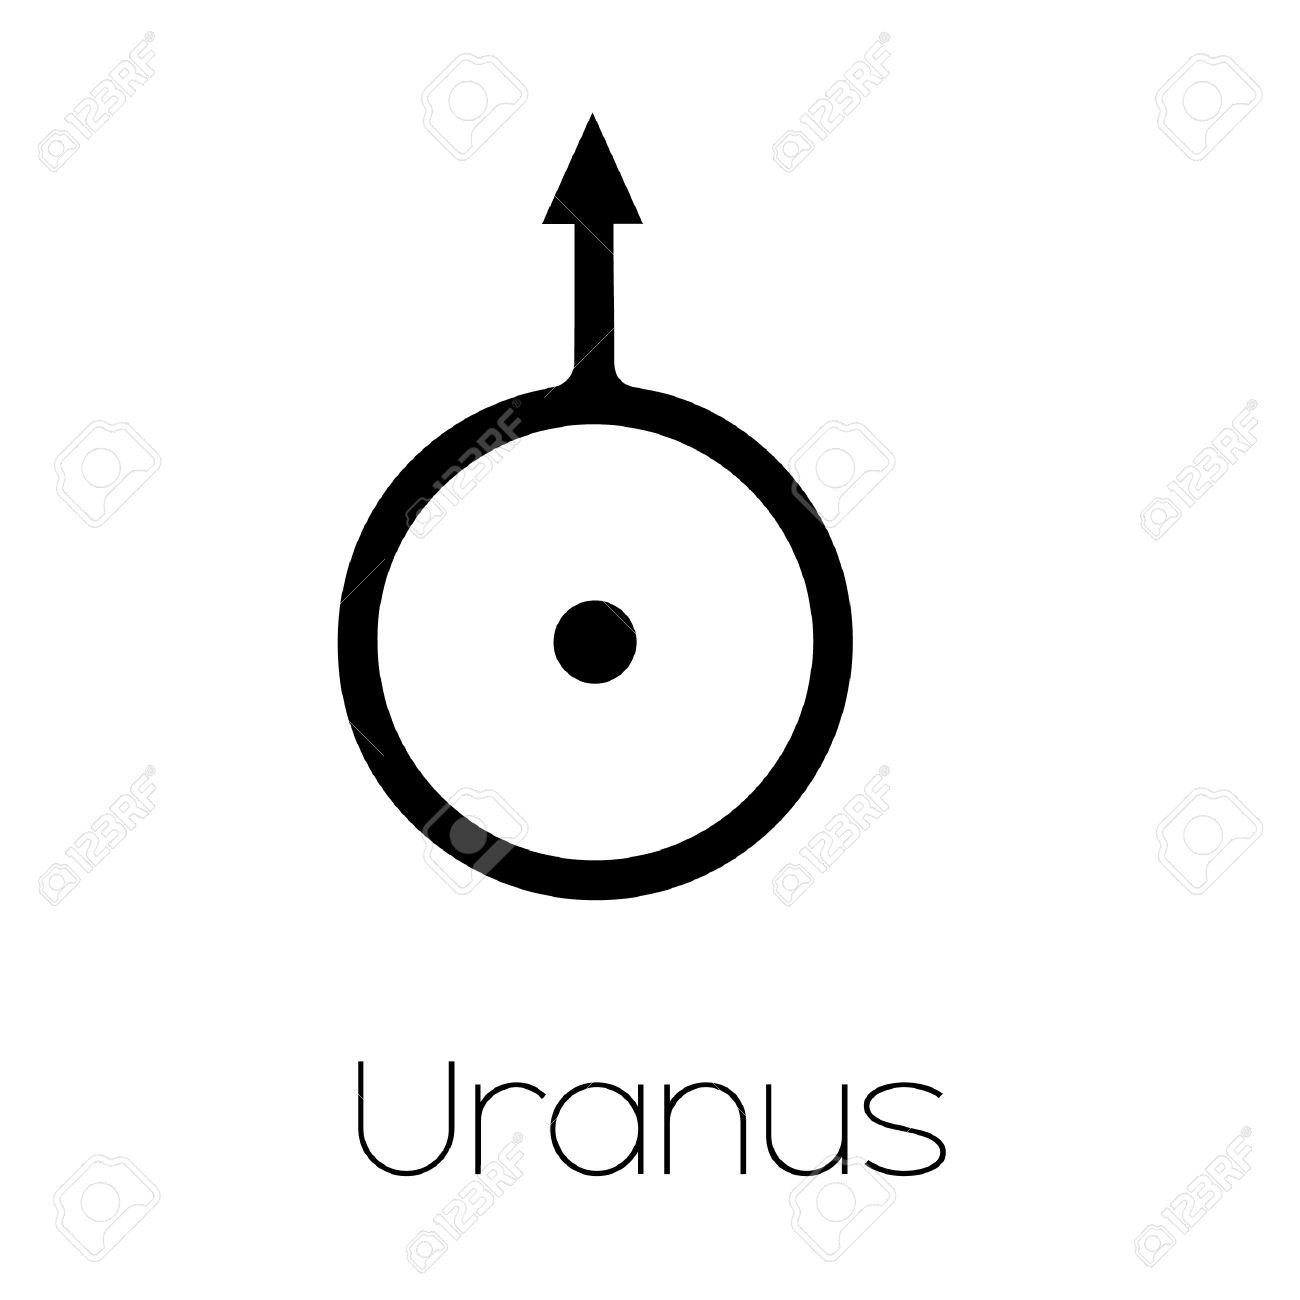 Illustrated planet symbols uranus stock photo picture and royalty illustrated planet symbols uranus stock photo 46315204 biocorpaavc Gallery